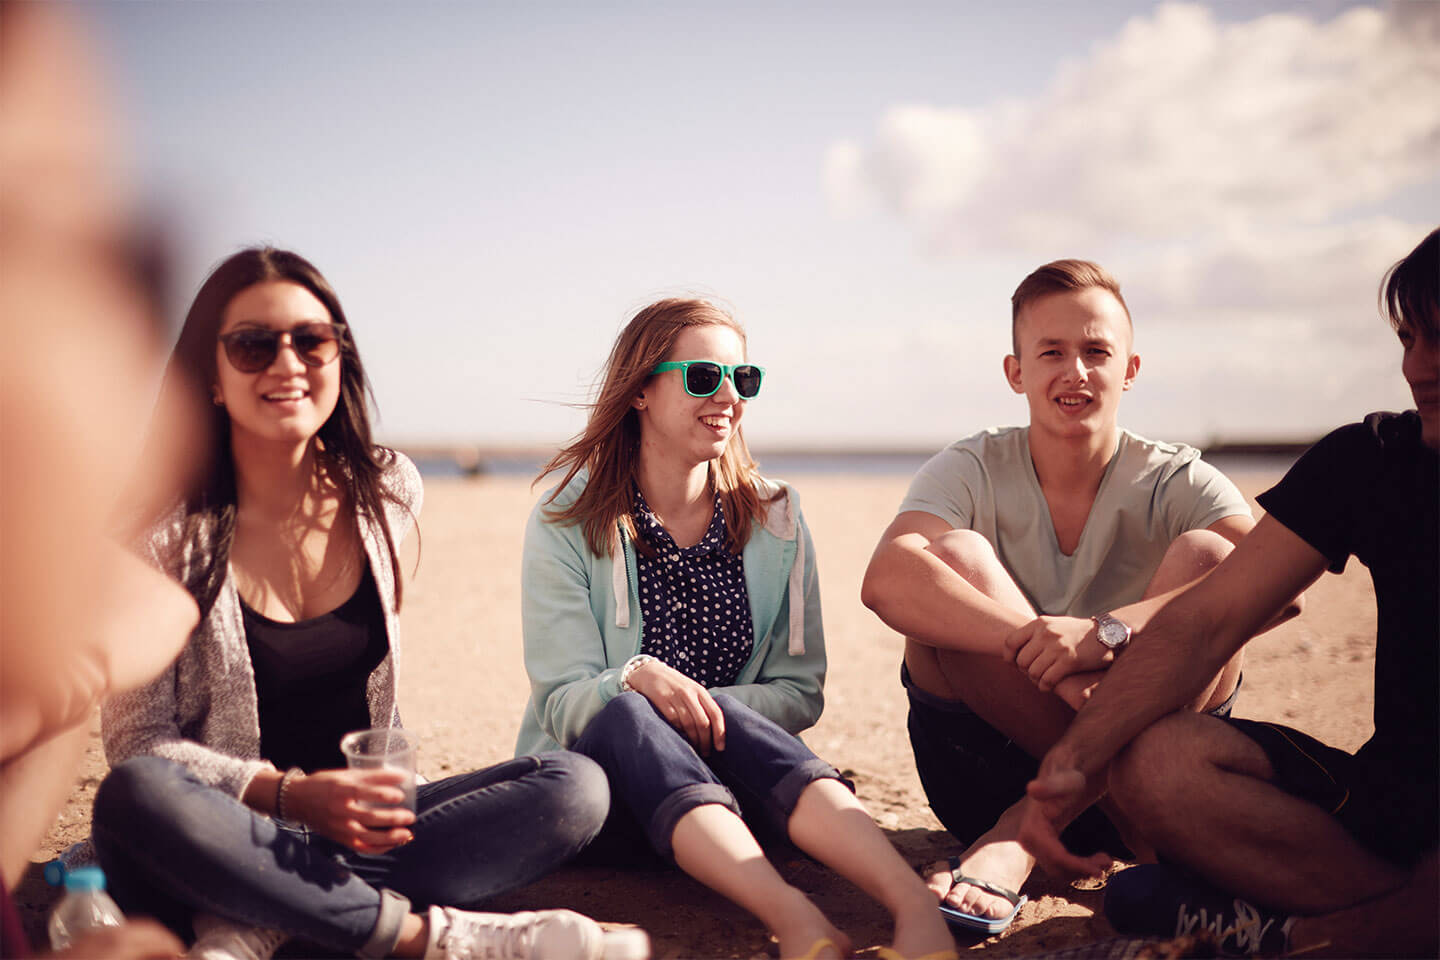 People sitting smiling on the beach